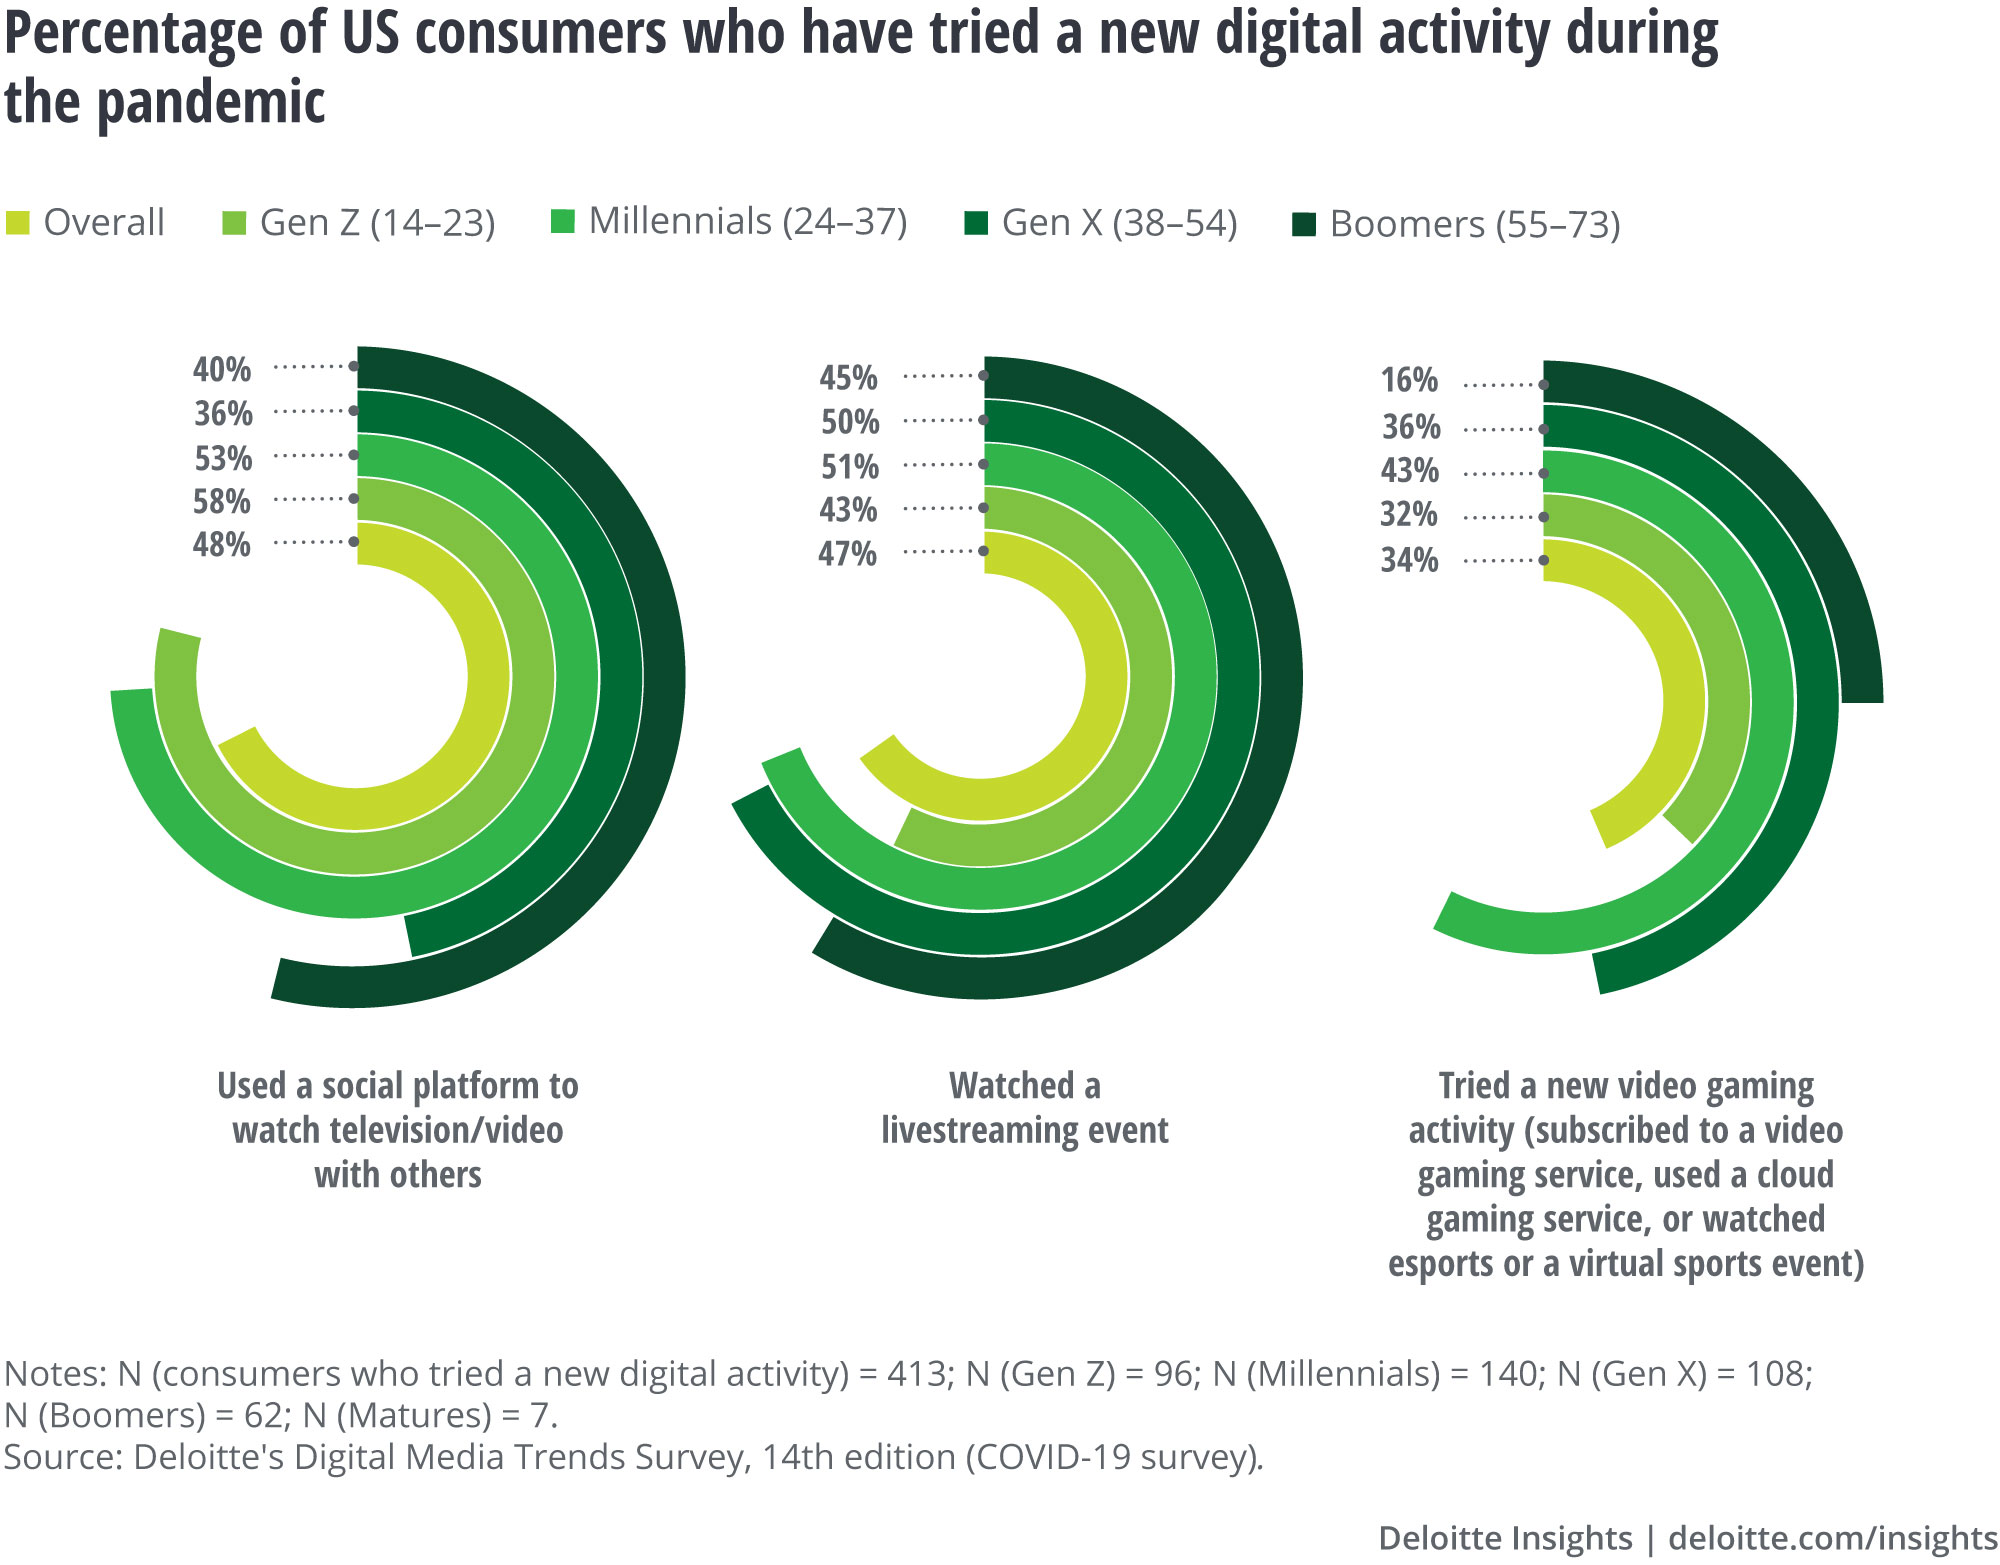 Percentage of US consumers who have tried a new digital activity during the pandemic